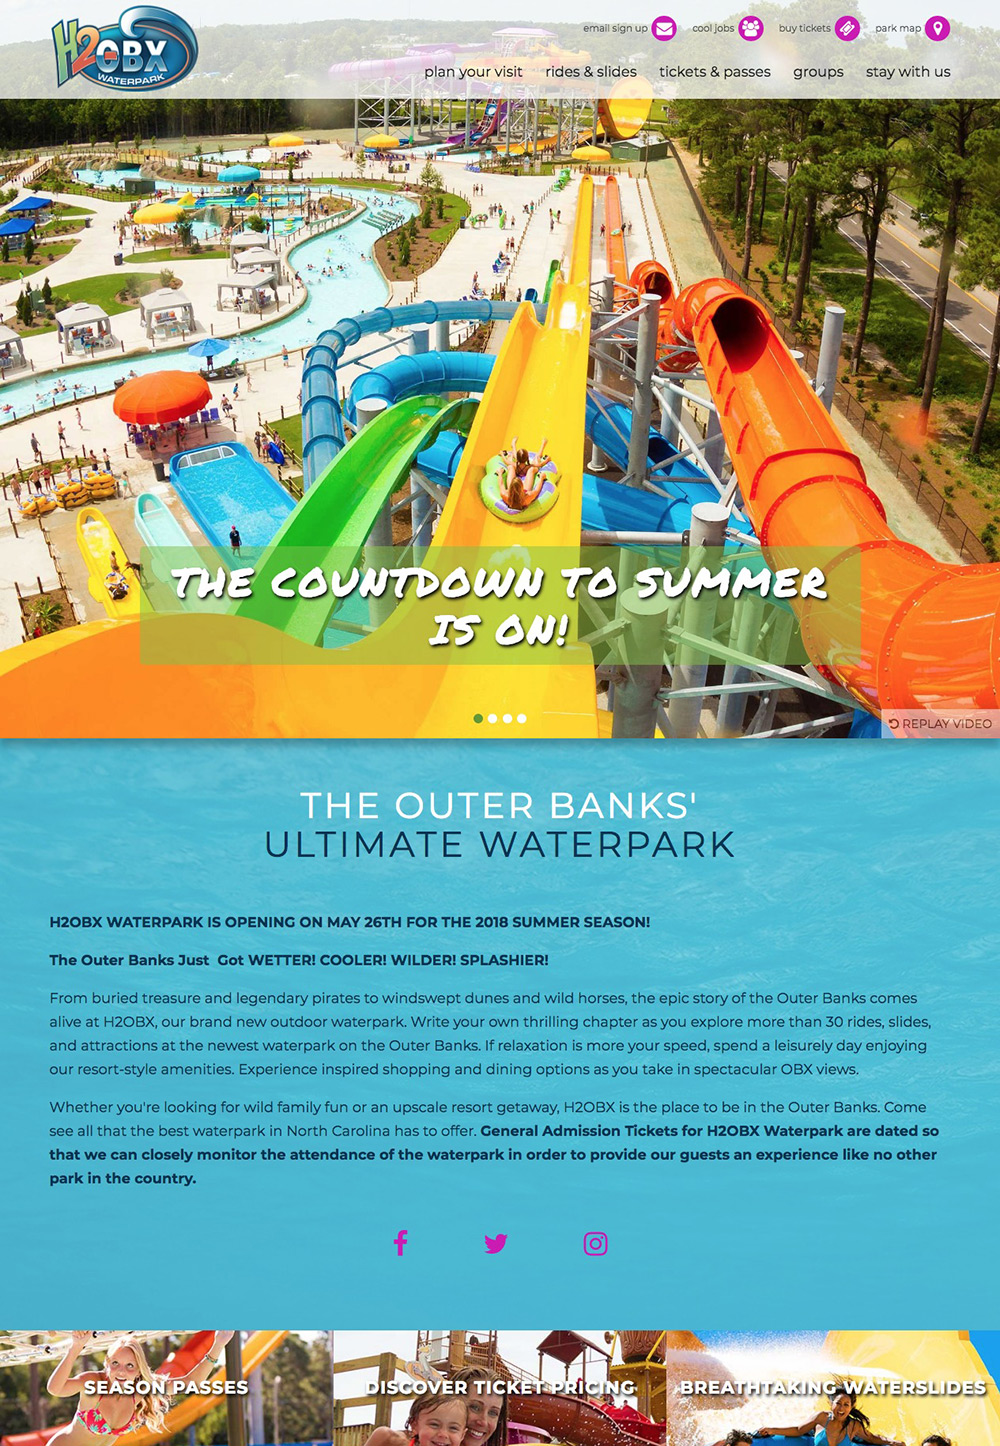 H2OBX Waterpark homepage